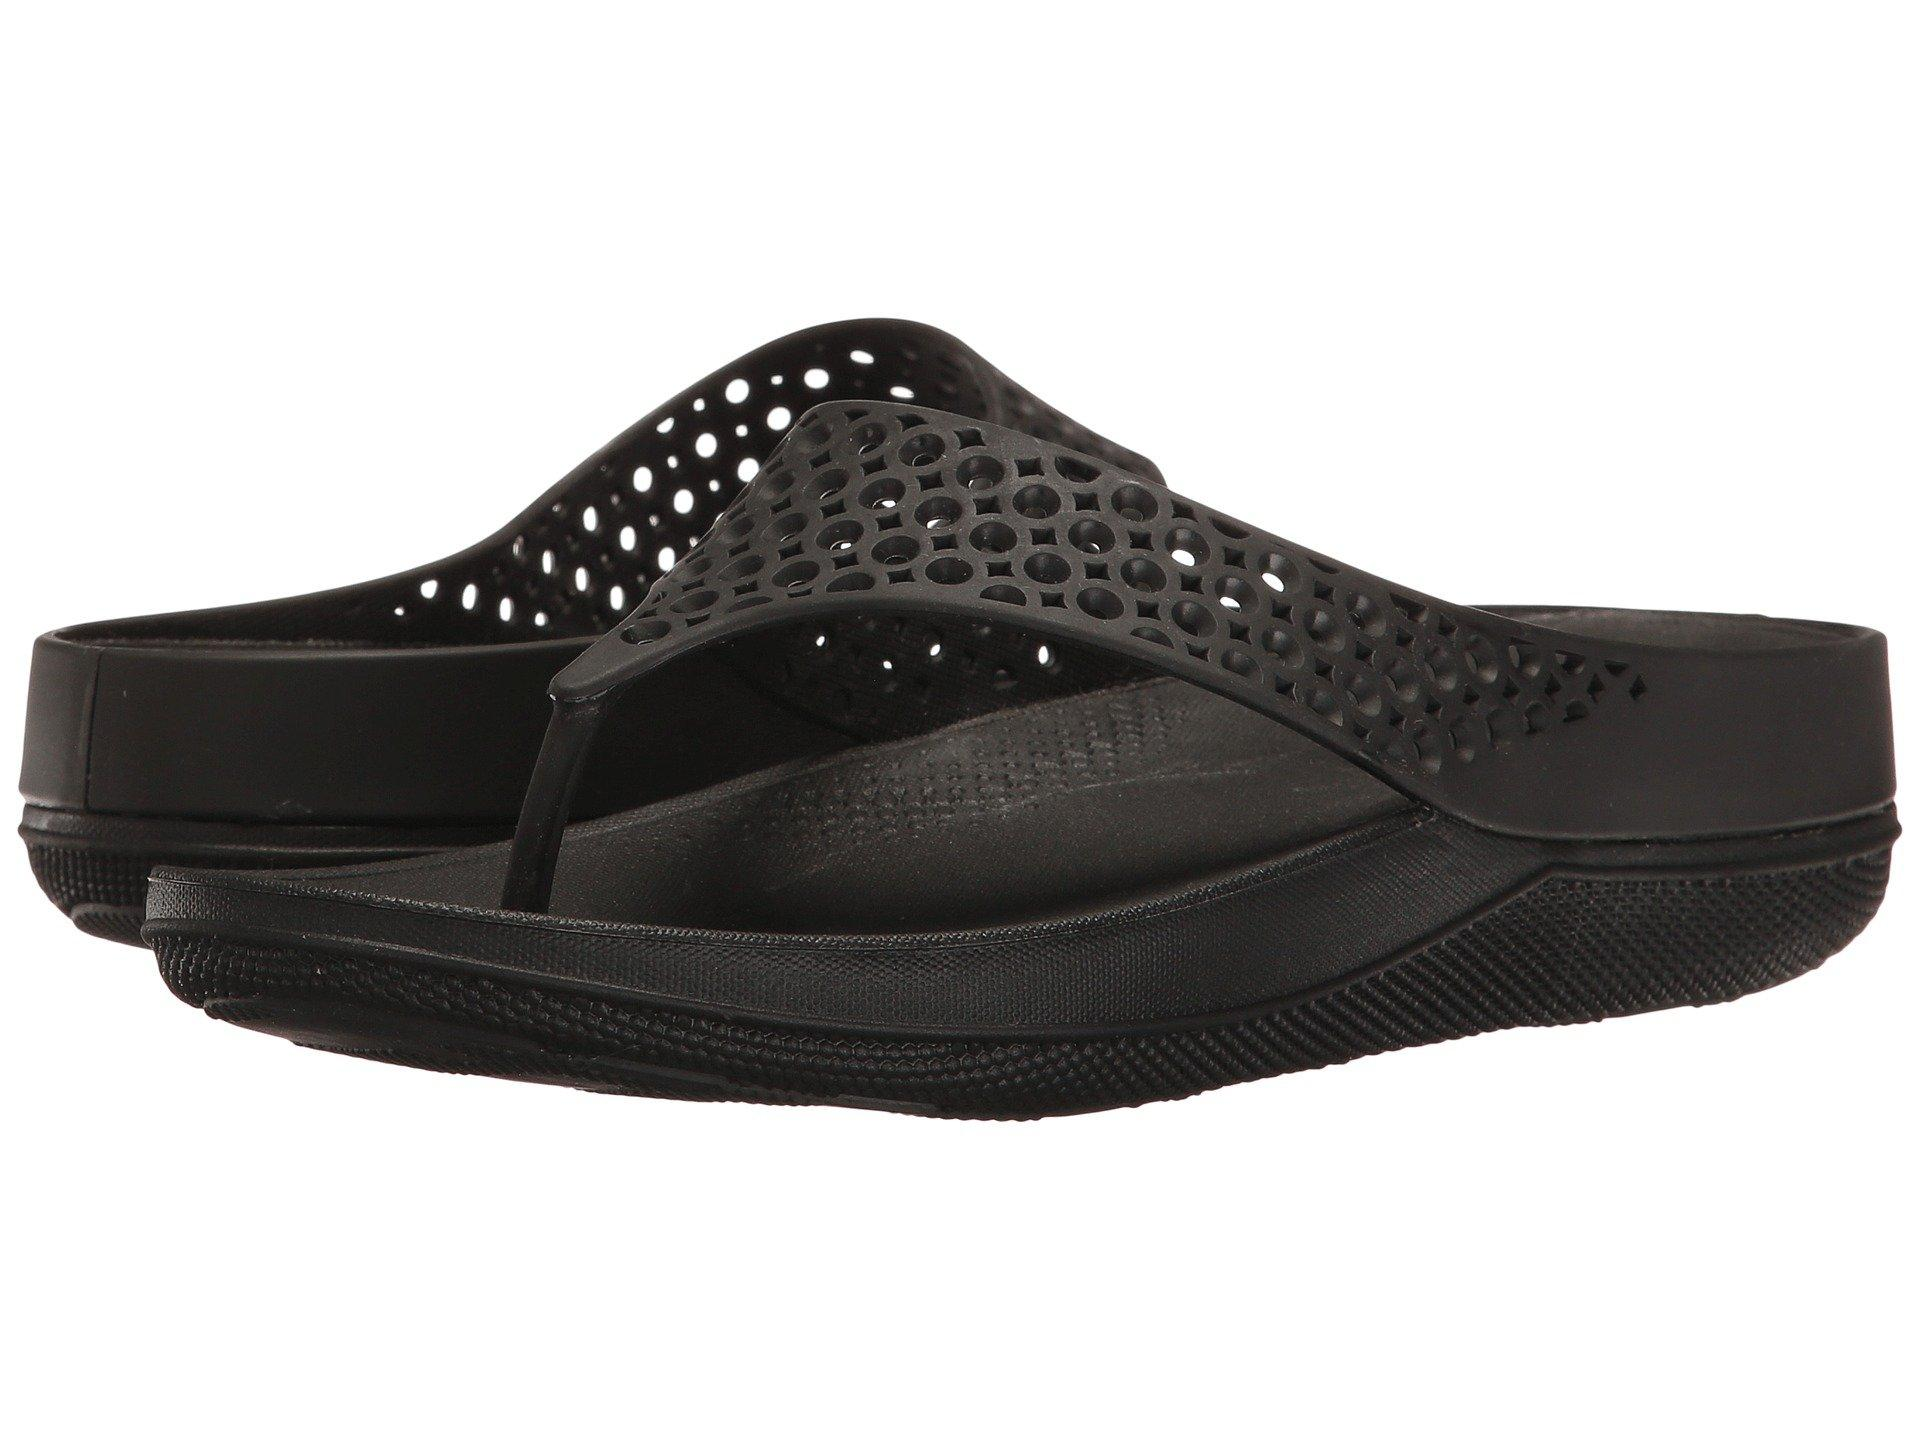 90a7720fac7c6 Fitflop Ringer Welljelly Flip-Flop In All Black